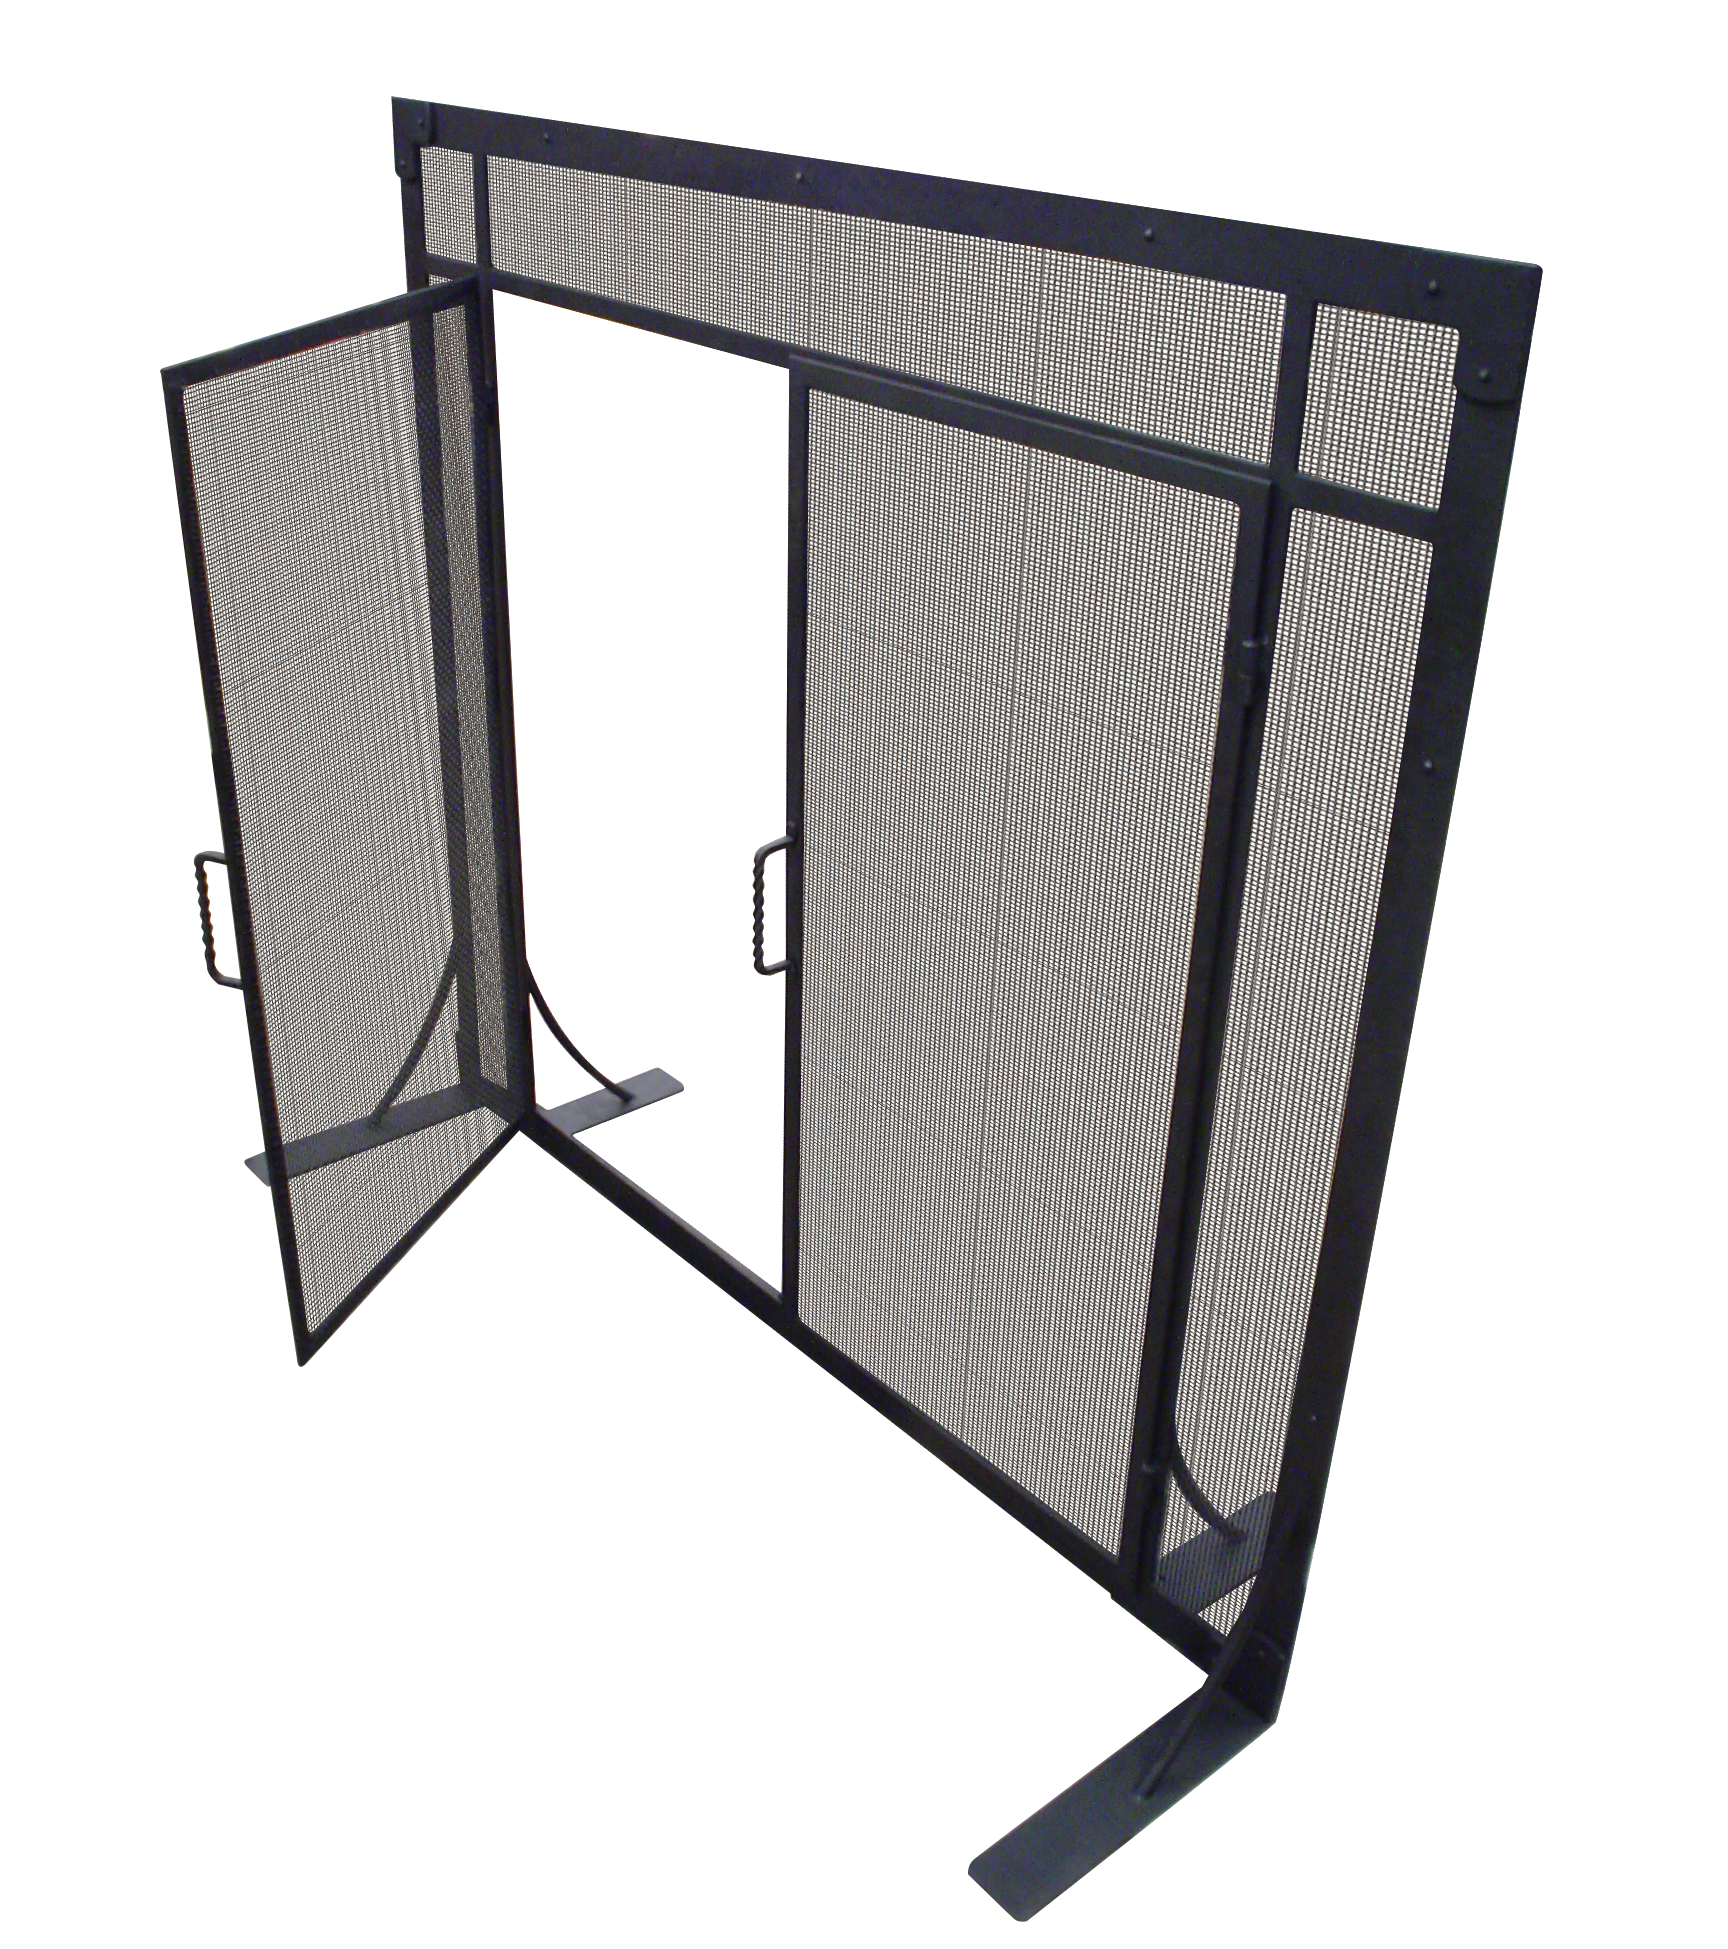 Fireplace Screen #9: This hand forged steel fireplace screen has latch doors and woven steel mesh.